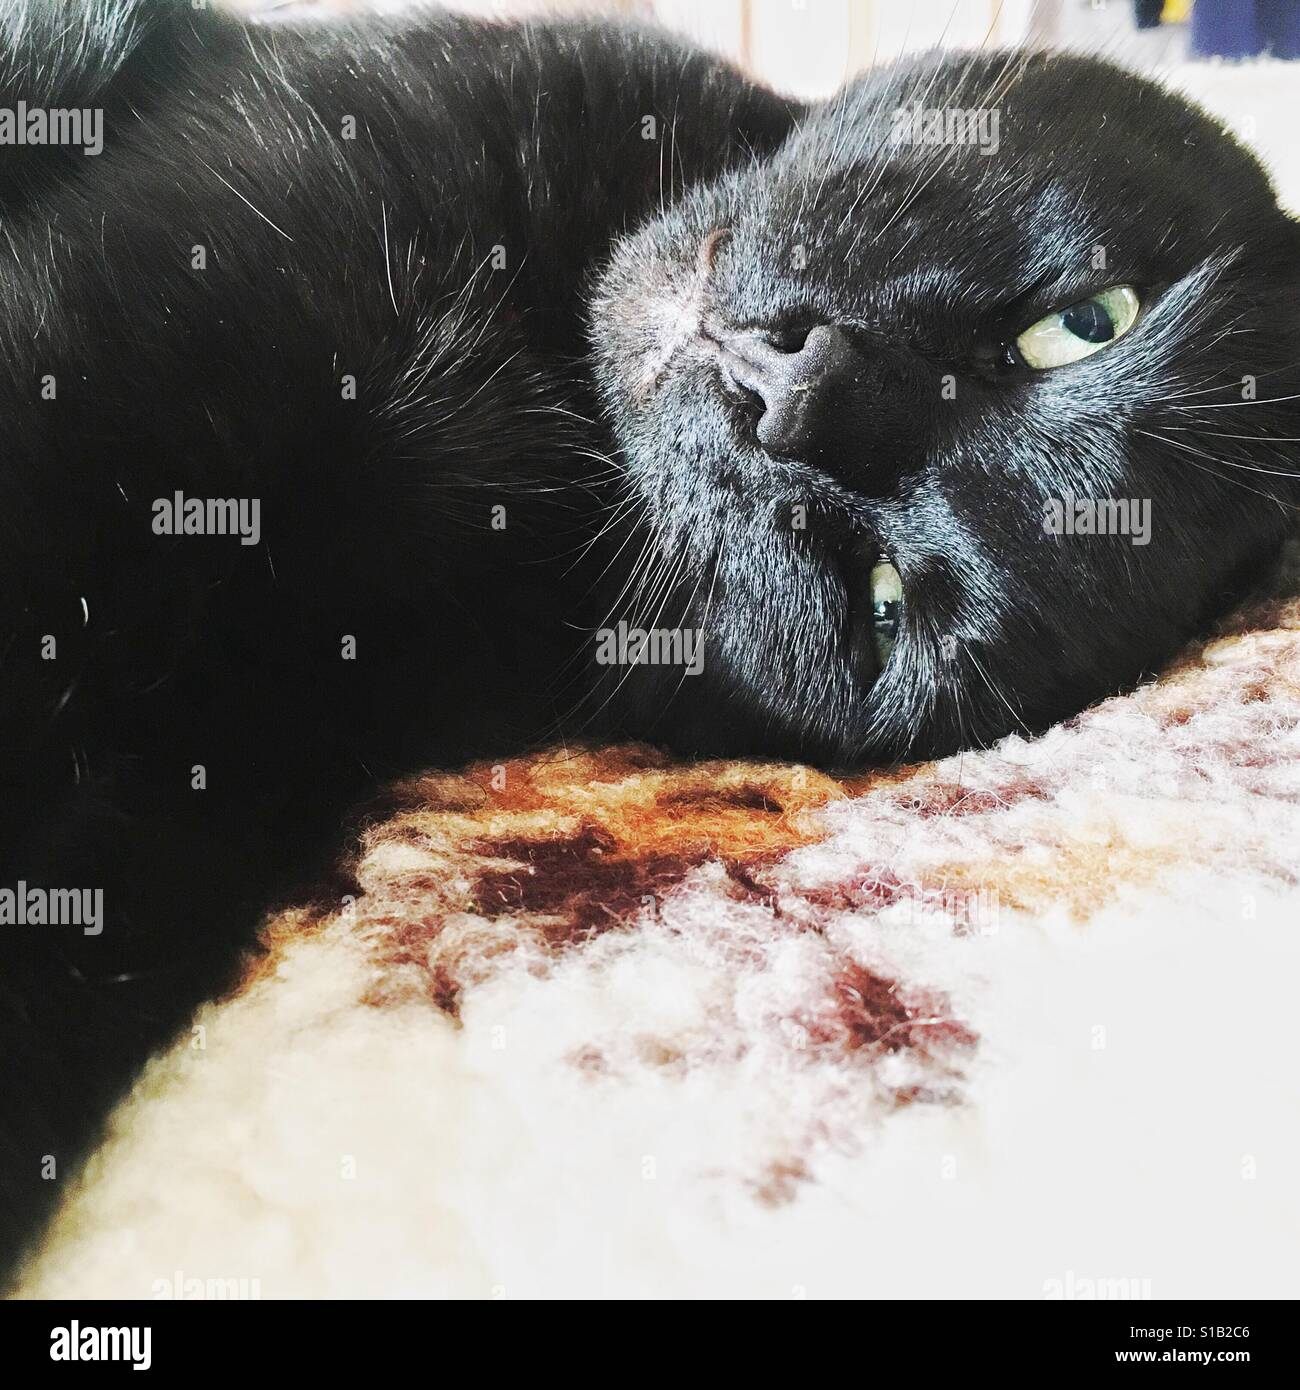 Black cat dozing on a bed - Stock Image